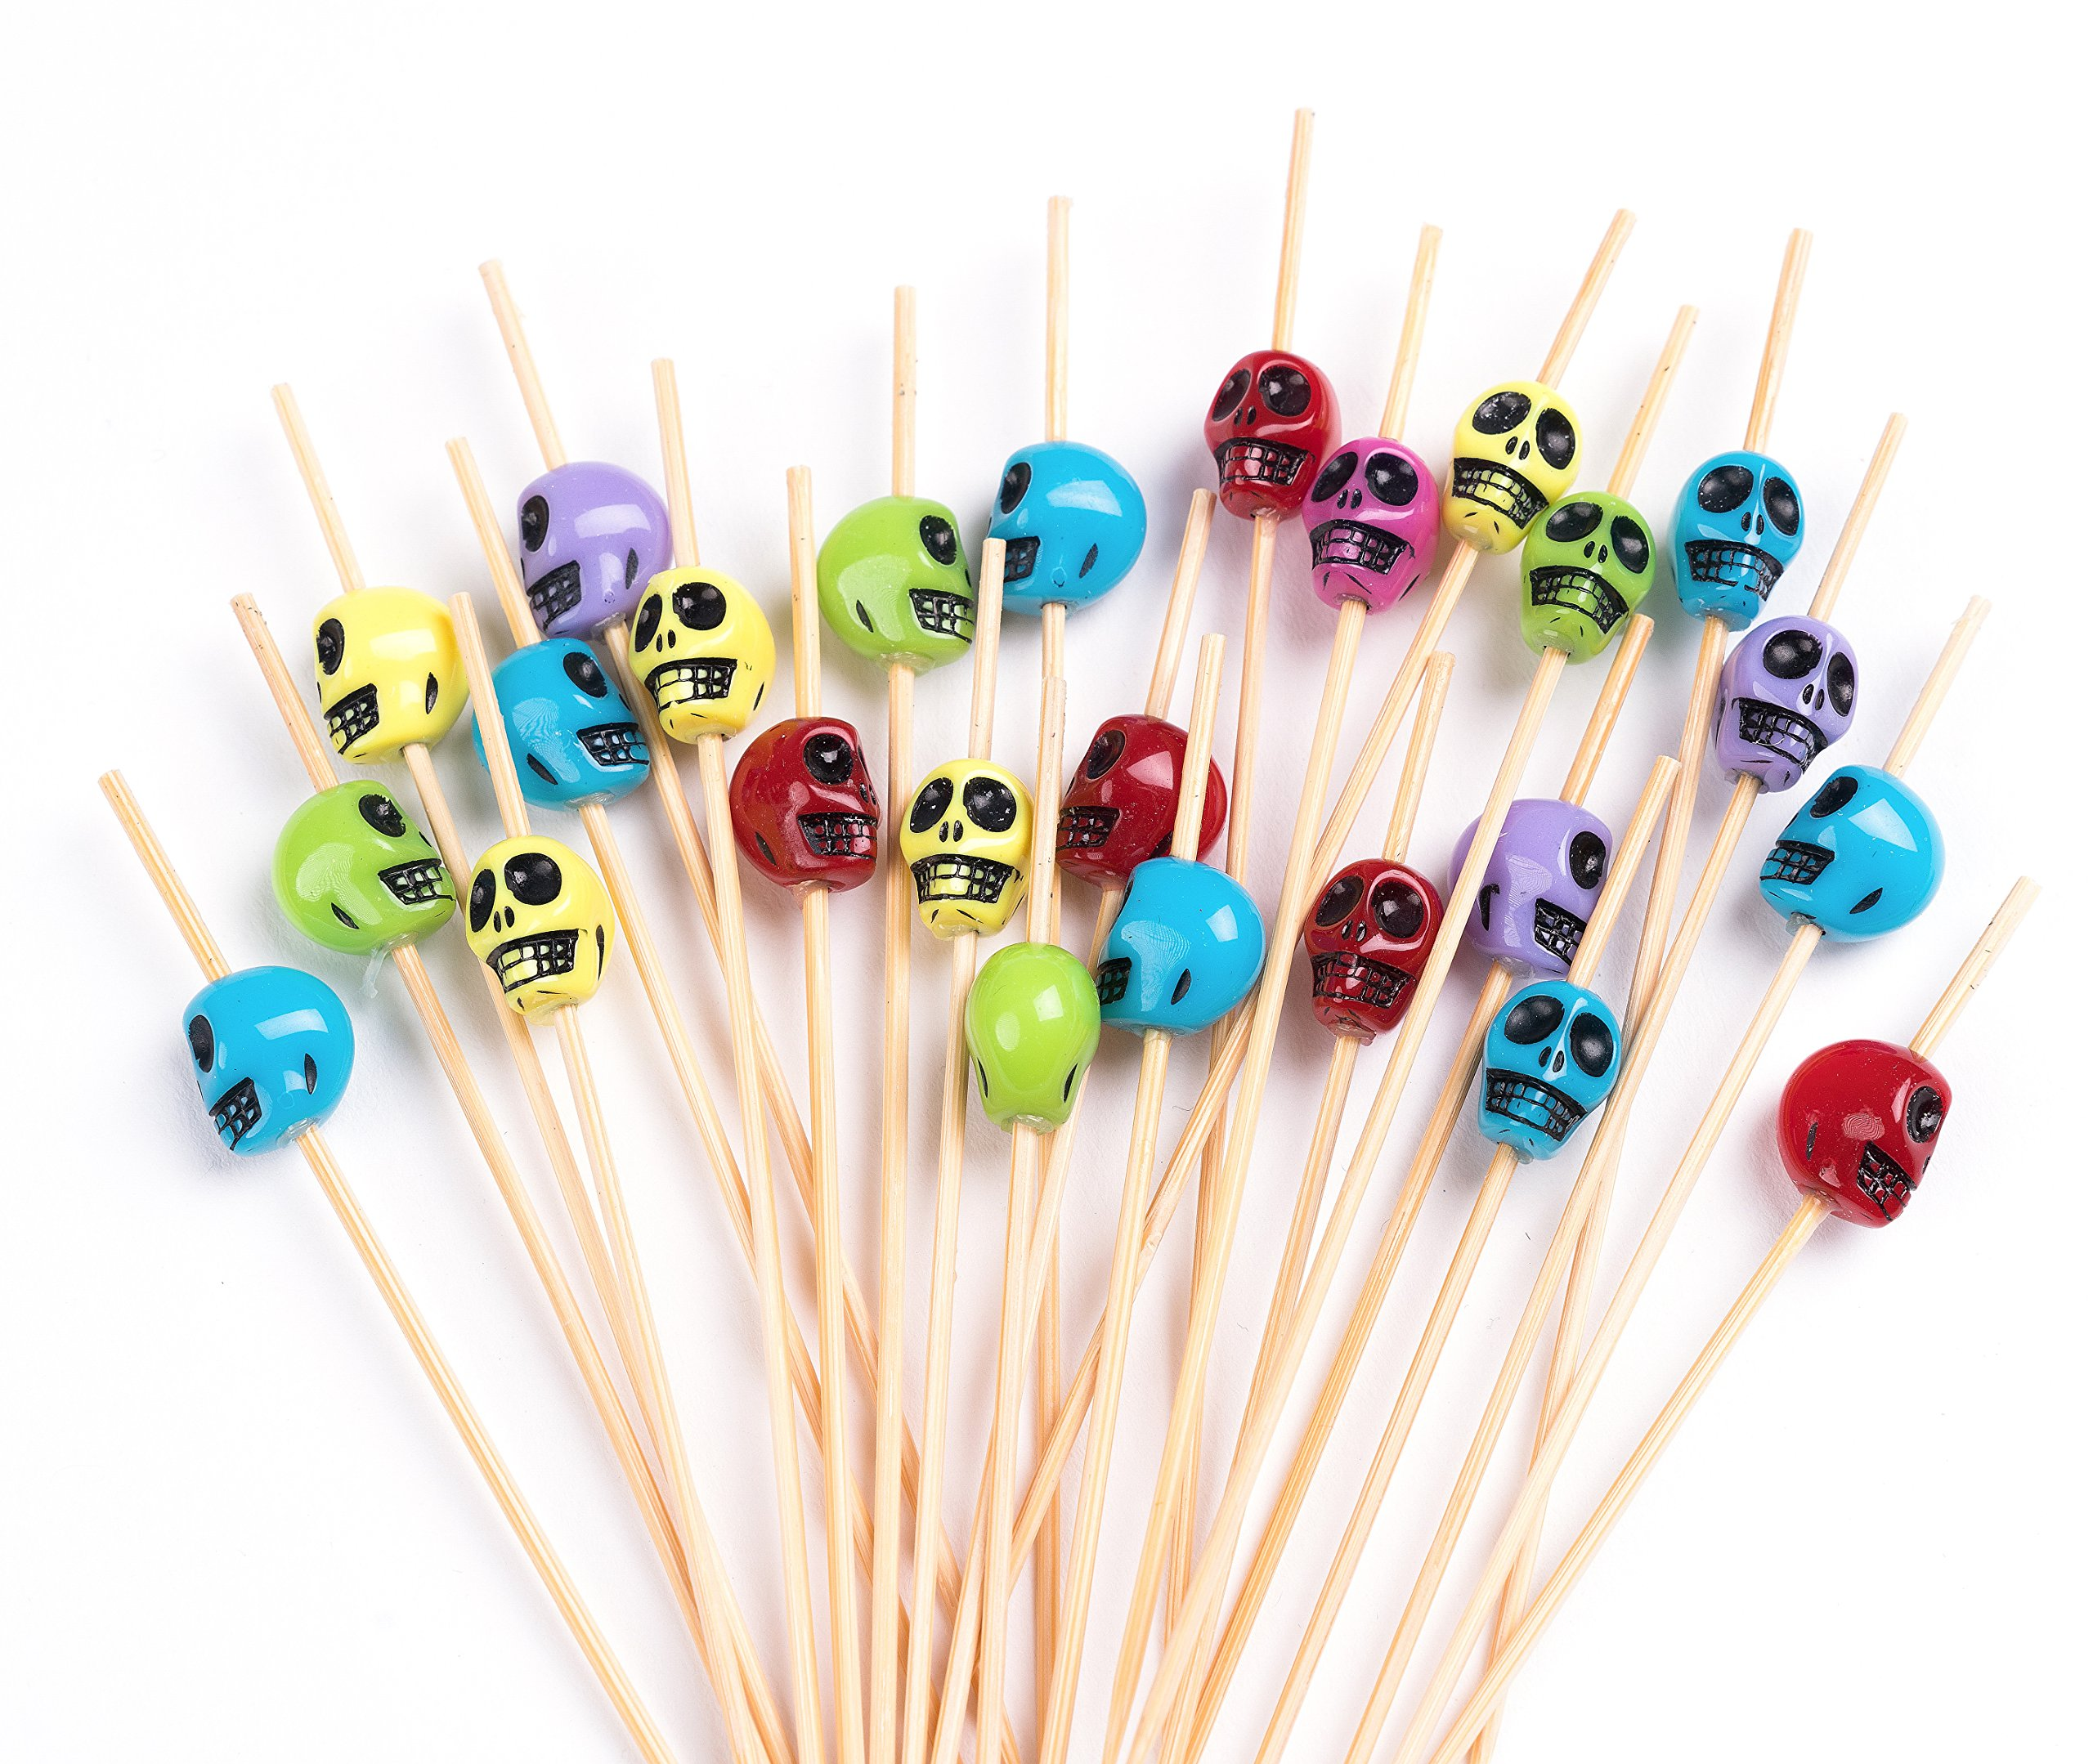 PuTwo Cocktail Picks Handmade Bamboo Toothpicks 100ct 4.7'' in Multicolor Skulls by PuTwo (Image #1)